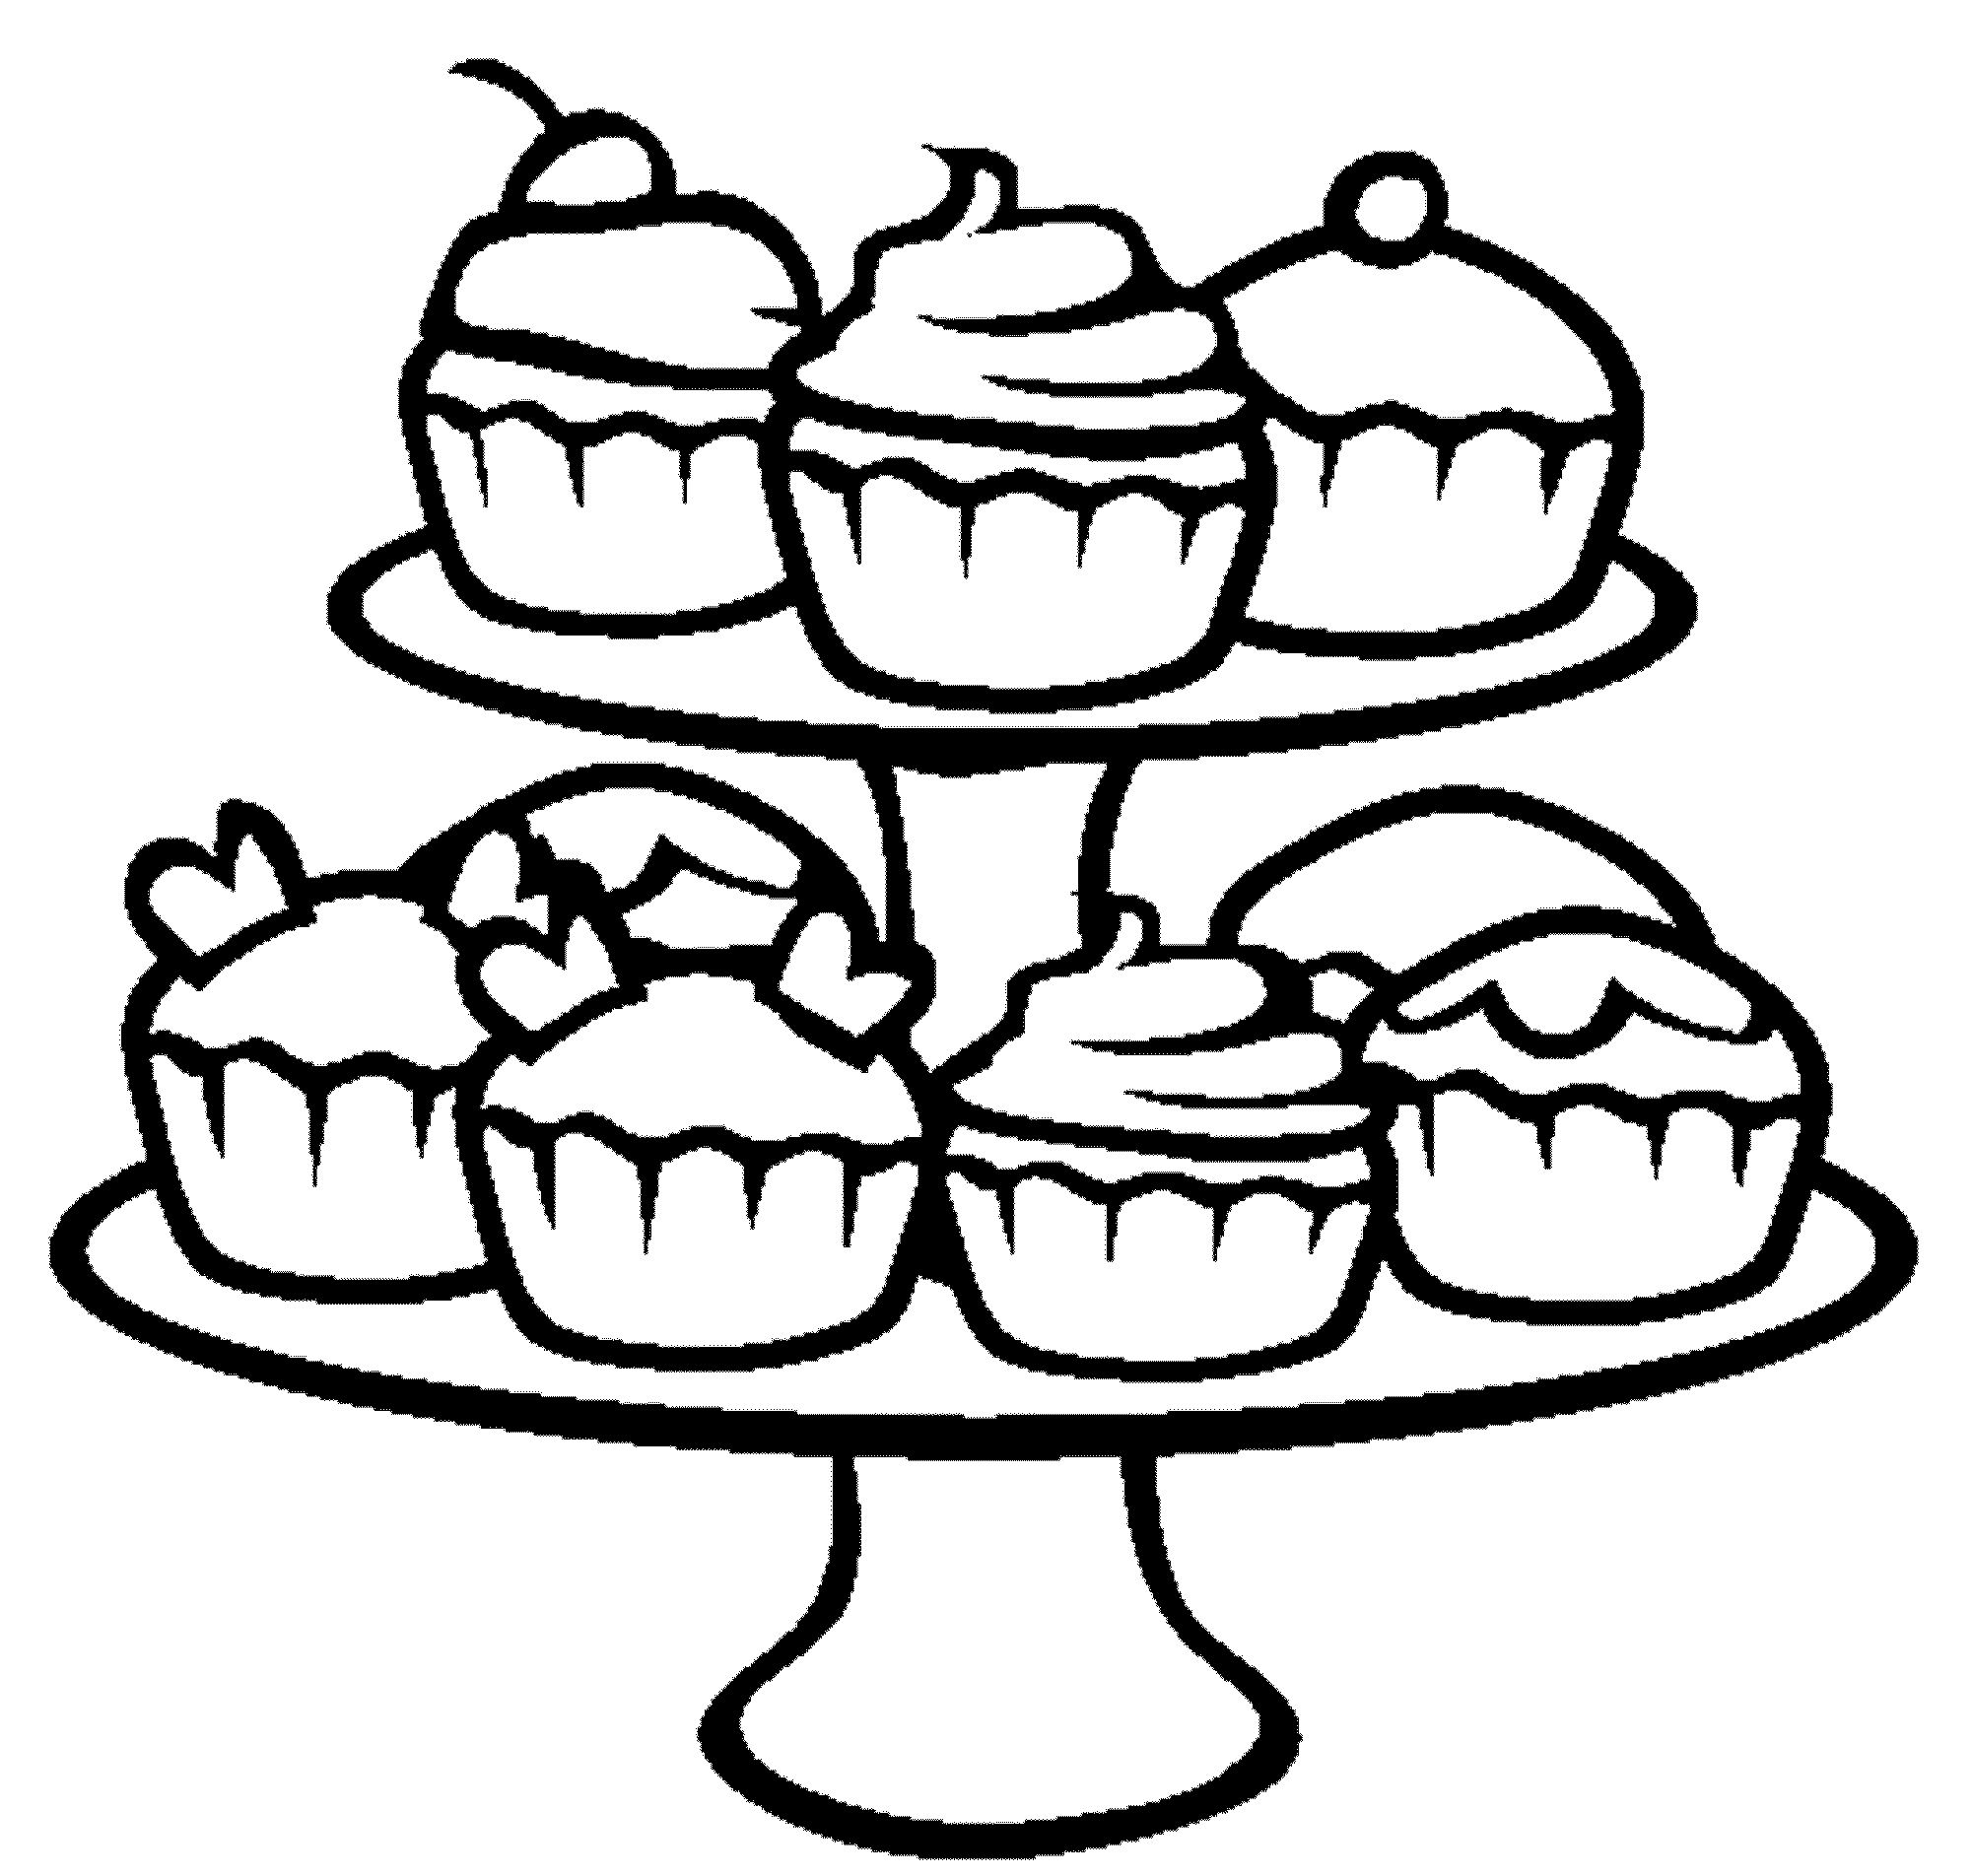 Cute Cupcakes Drawing at GetDrawings.com | Free for personal use ...